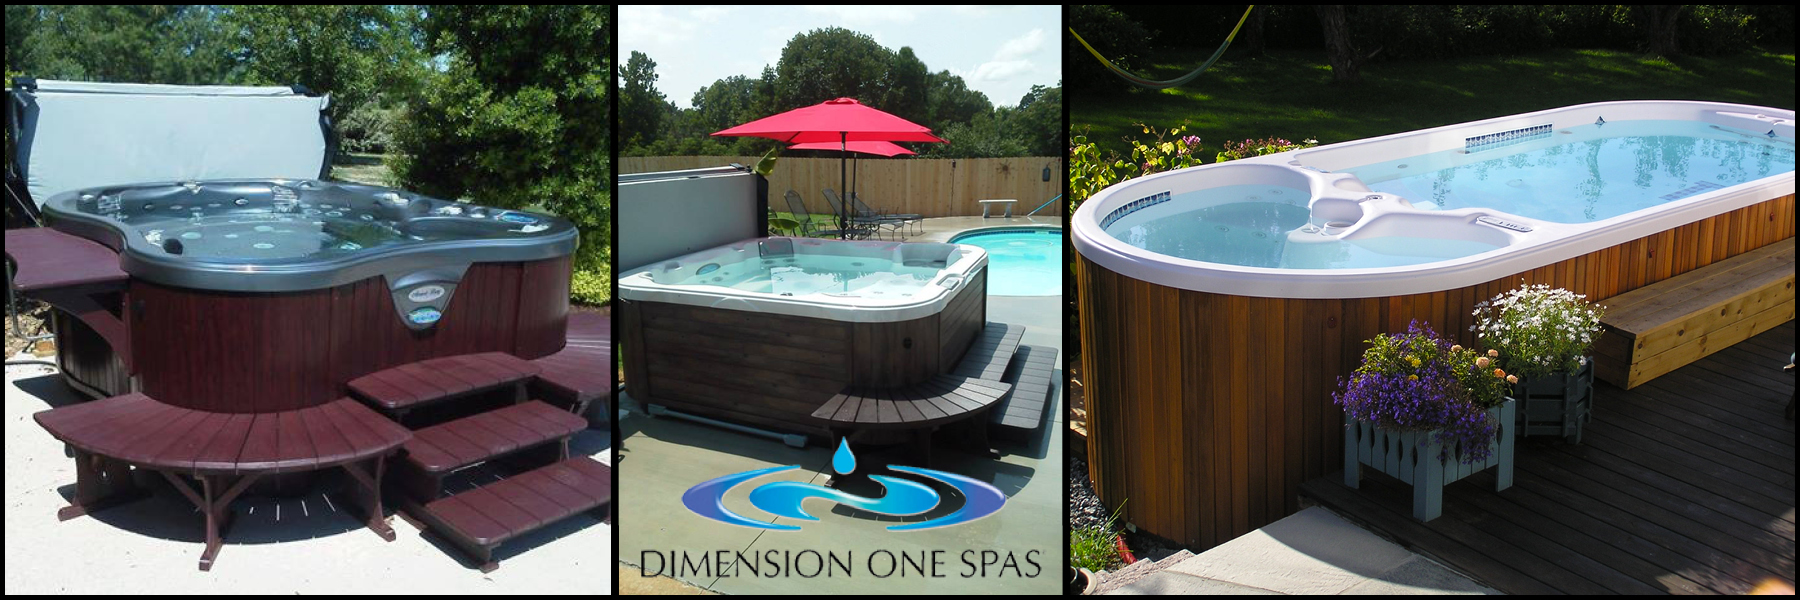 lighthouse spas pools dimension one spa. Black Bedroom Furniture Sets. Home Design Ideas